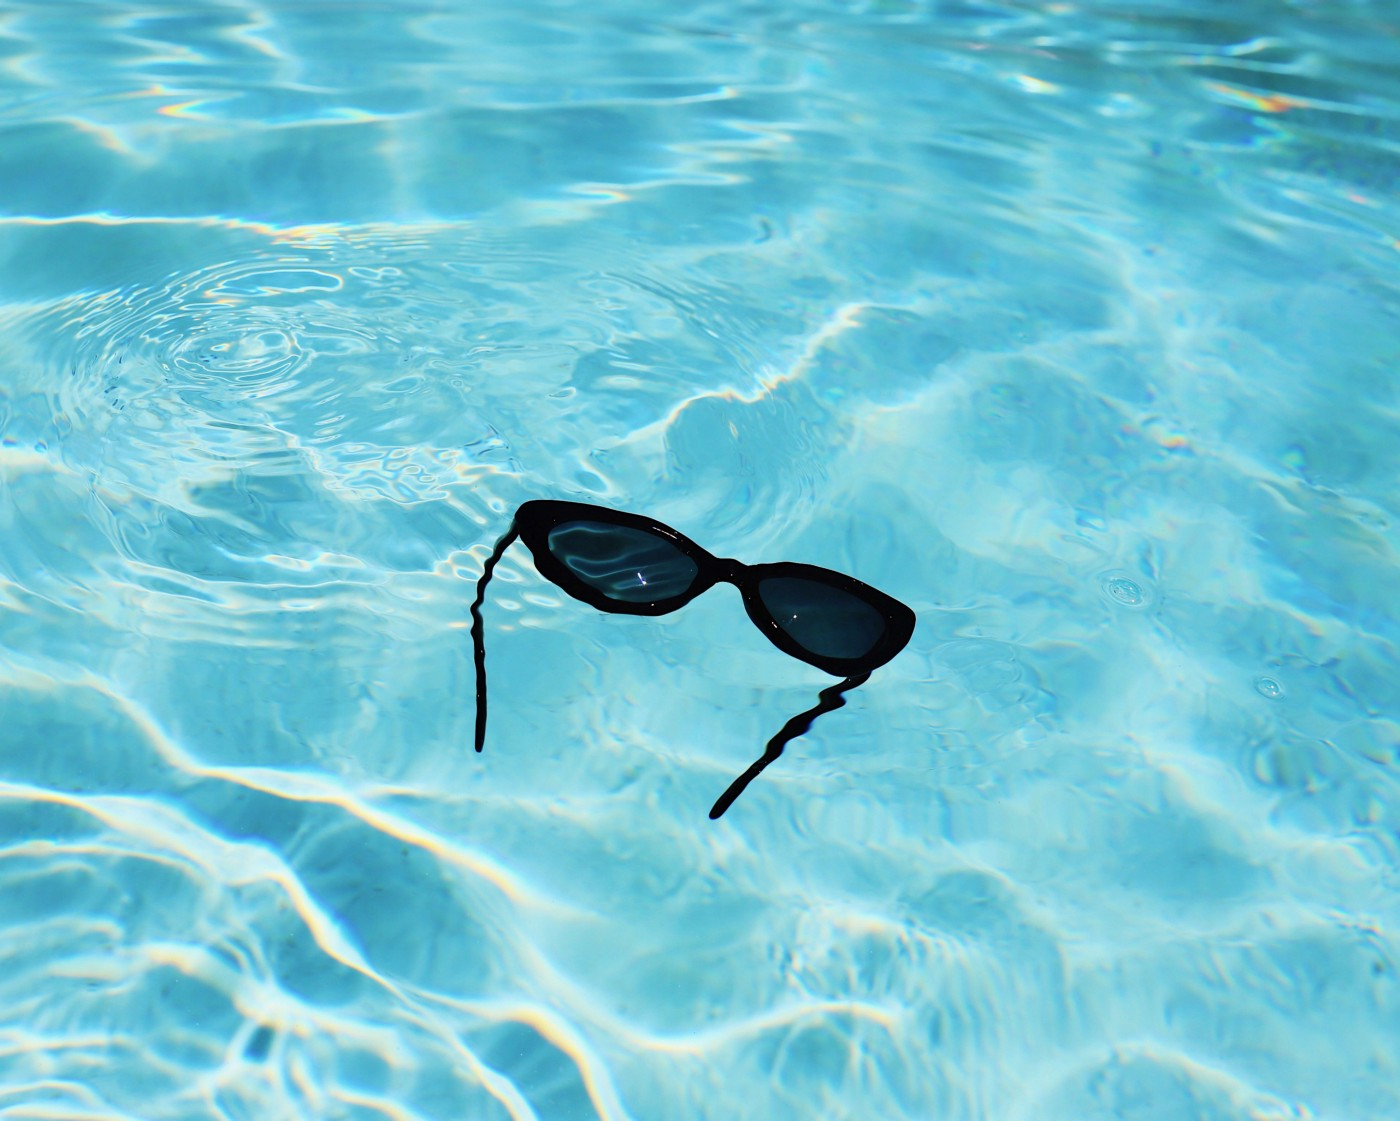 Sunglasses floating in bright blue water.